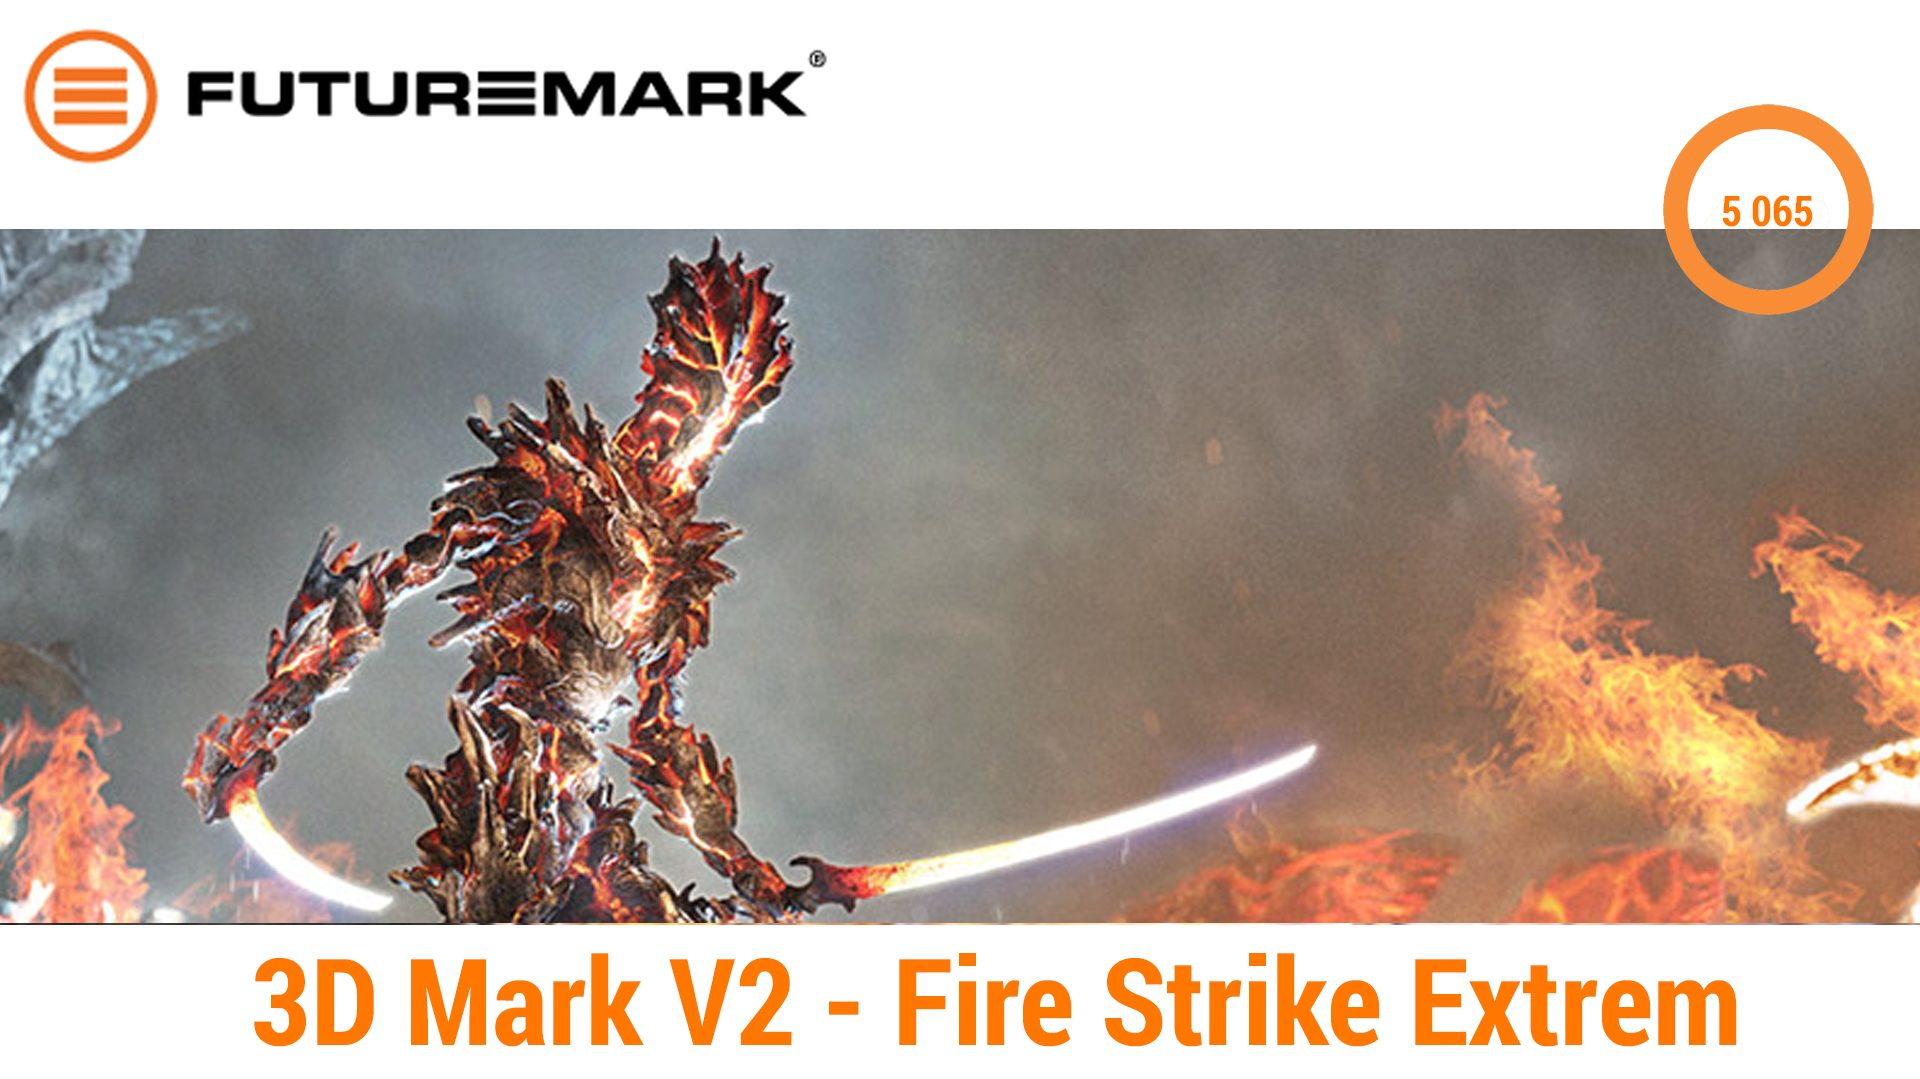 3D Mark V2 – Fire Strike Extreme